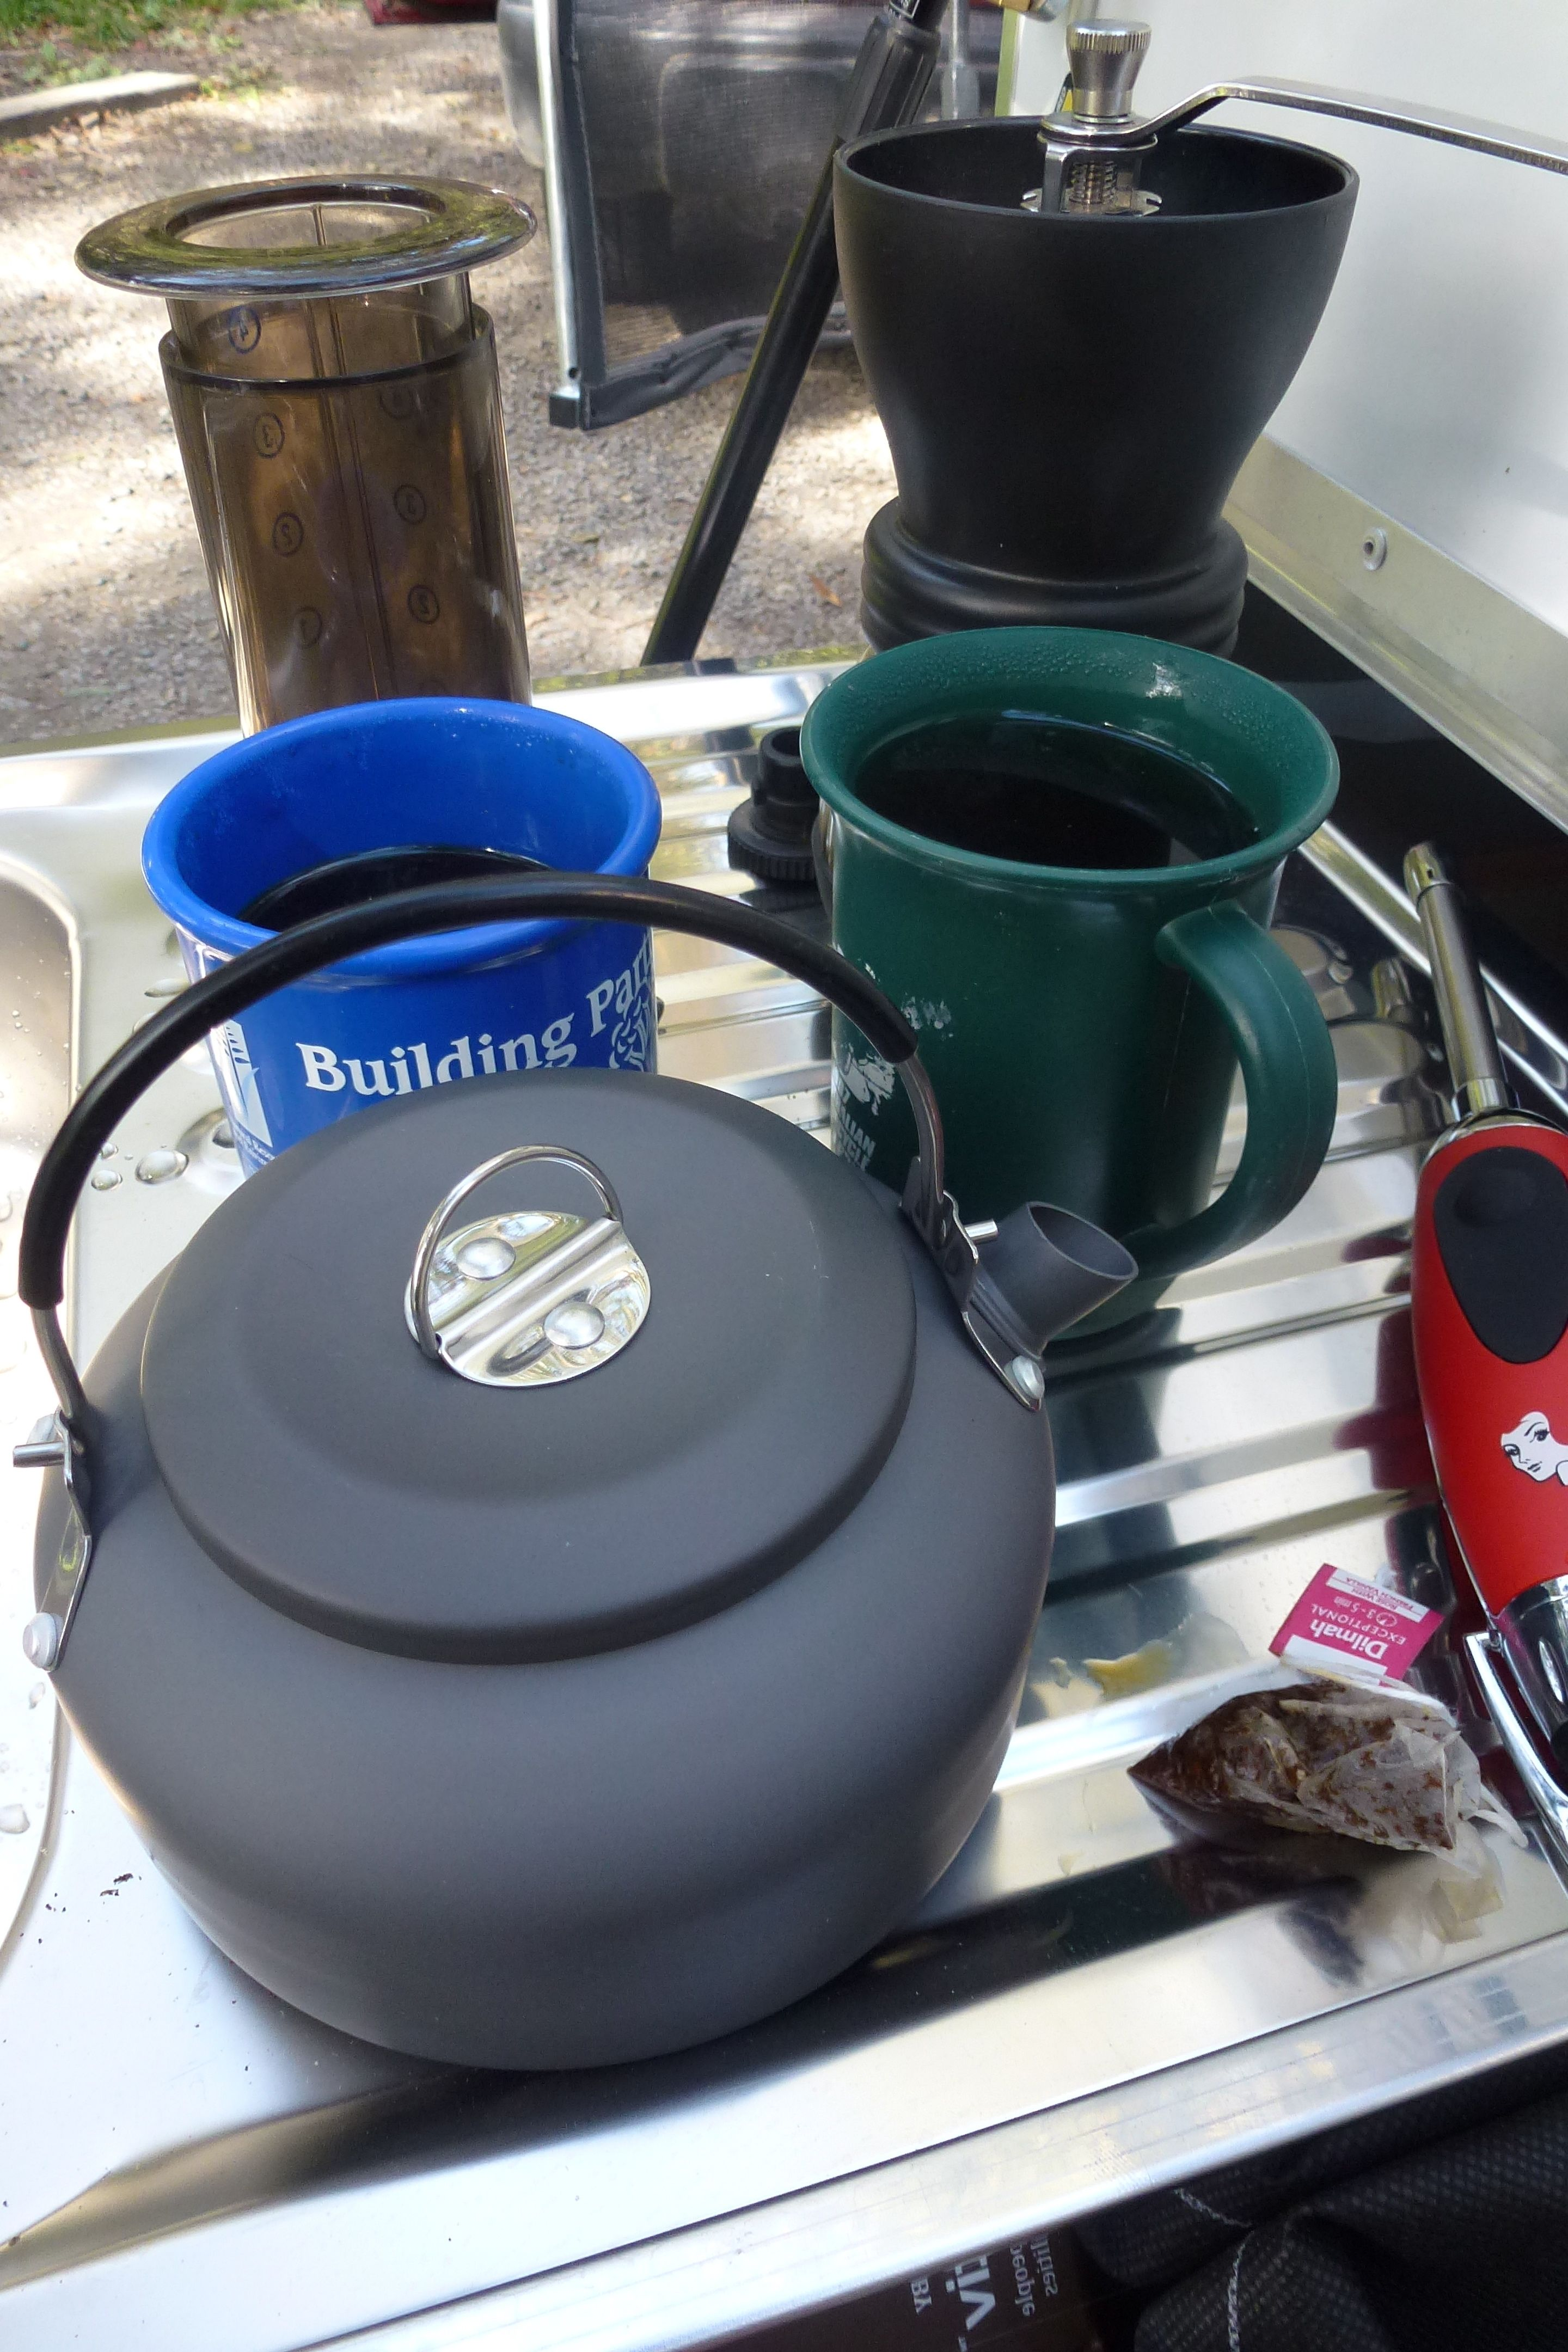 We got the nifty kettle from Aldi. It's tiny, but just